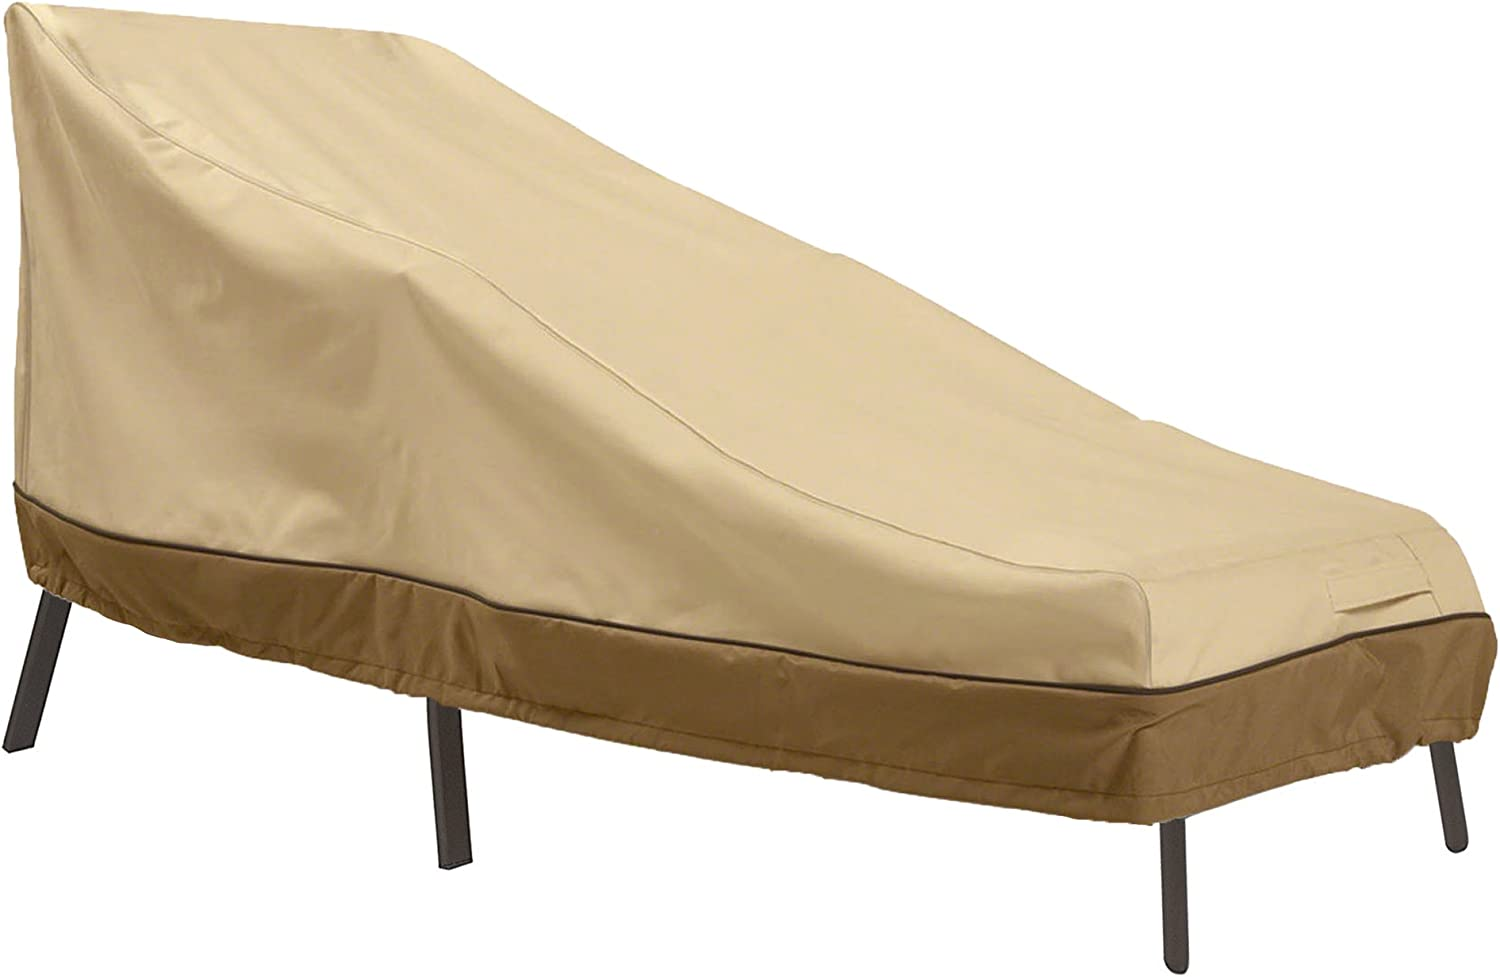 - Amazon.com : Classic Accessories 78952 Veranda Water-Resistant 66 Inch  Patio Chaise Lounge Cover, Pbbl Earth Bark, ONE SIZE : Patio Chaise Lounge  Covers : Garden & Outdoor